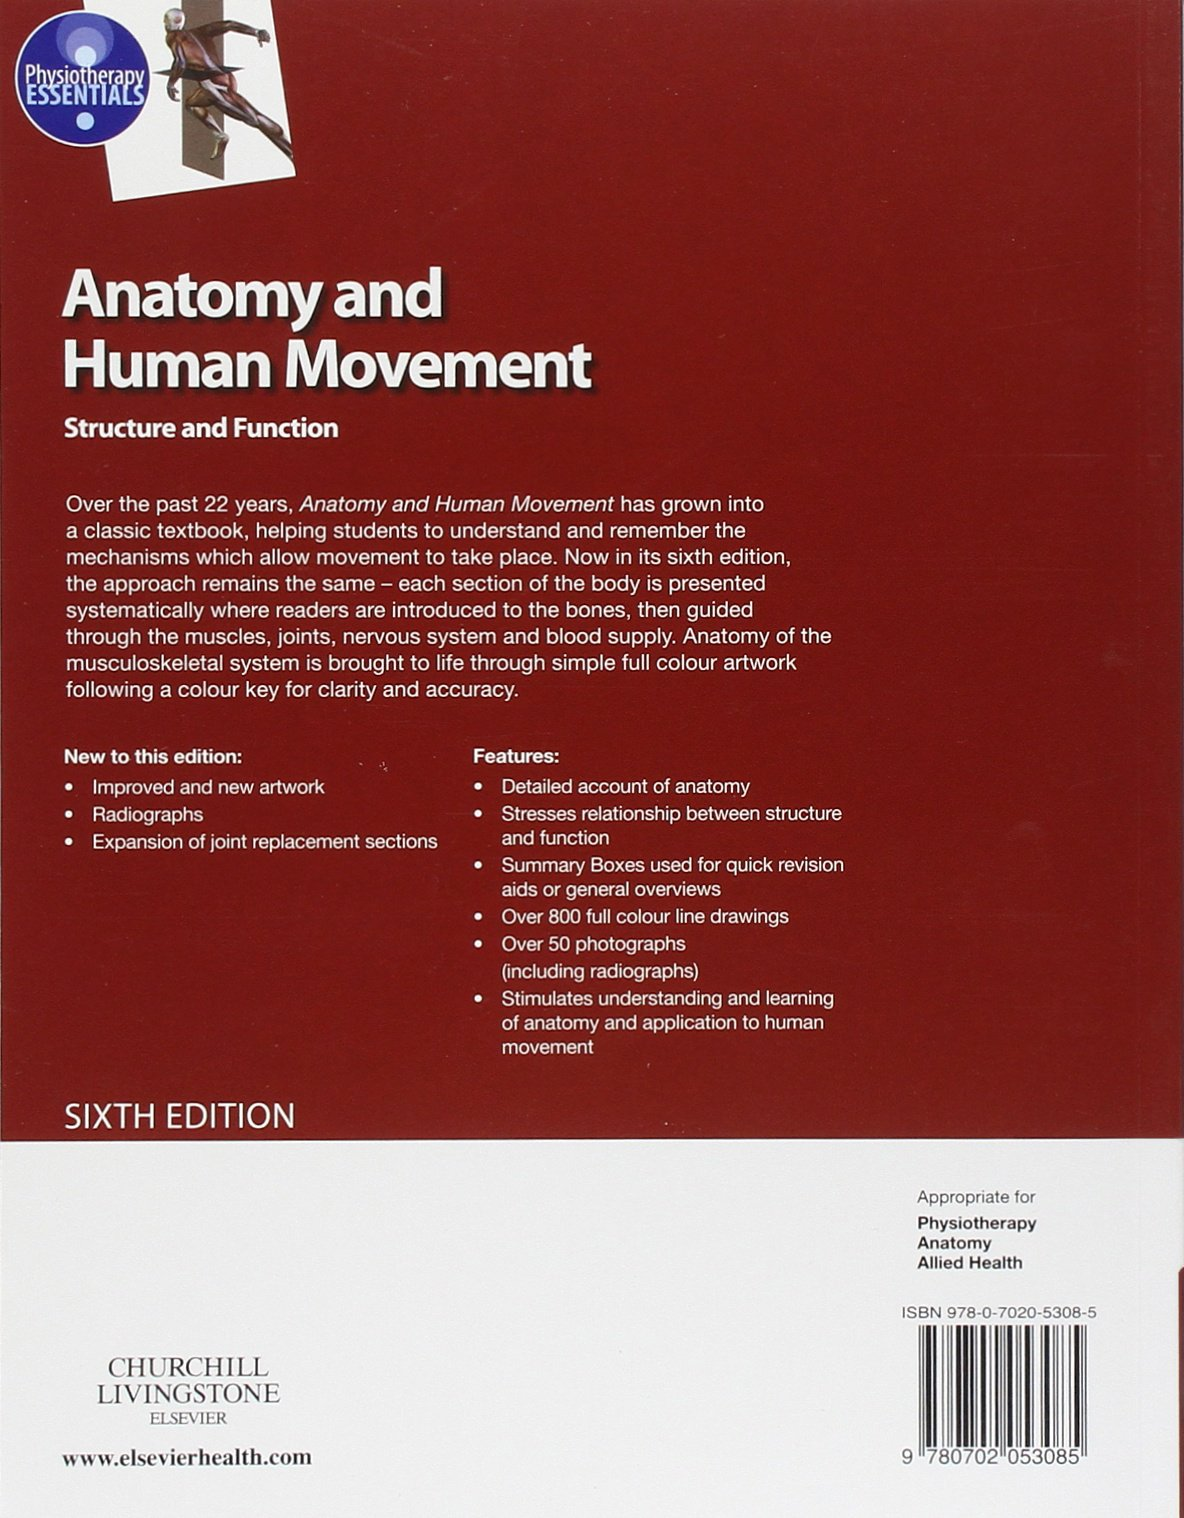 Anatomy And Human Movement Structure And Function Physiotherapy